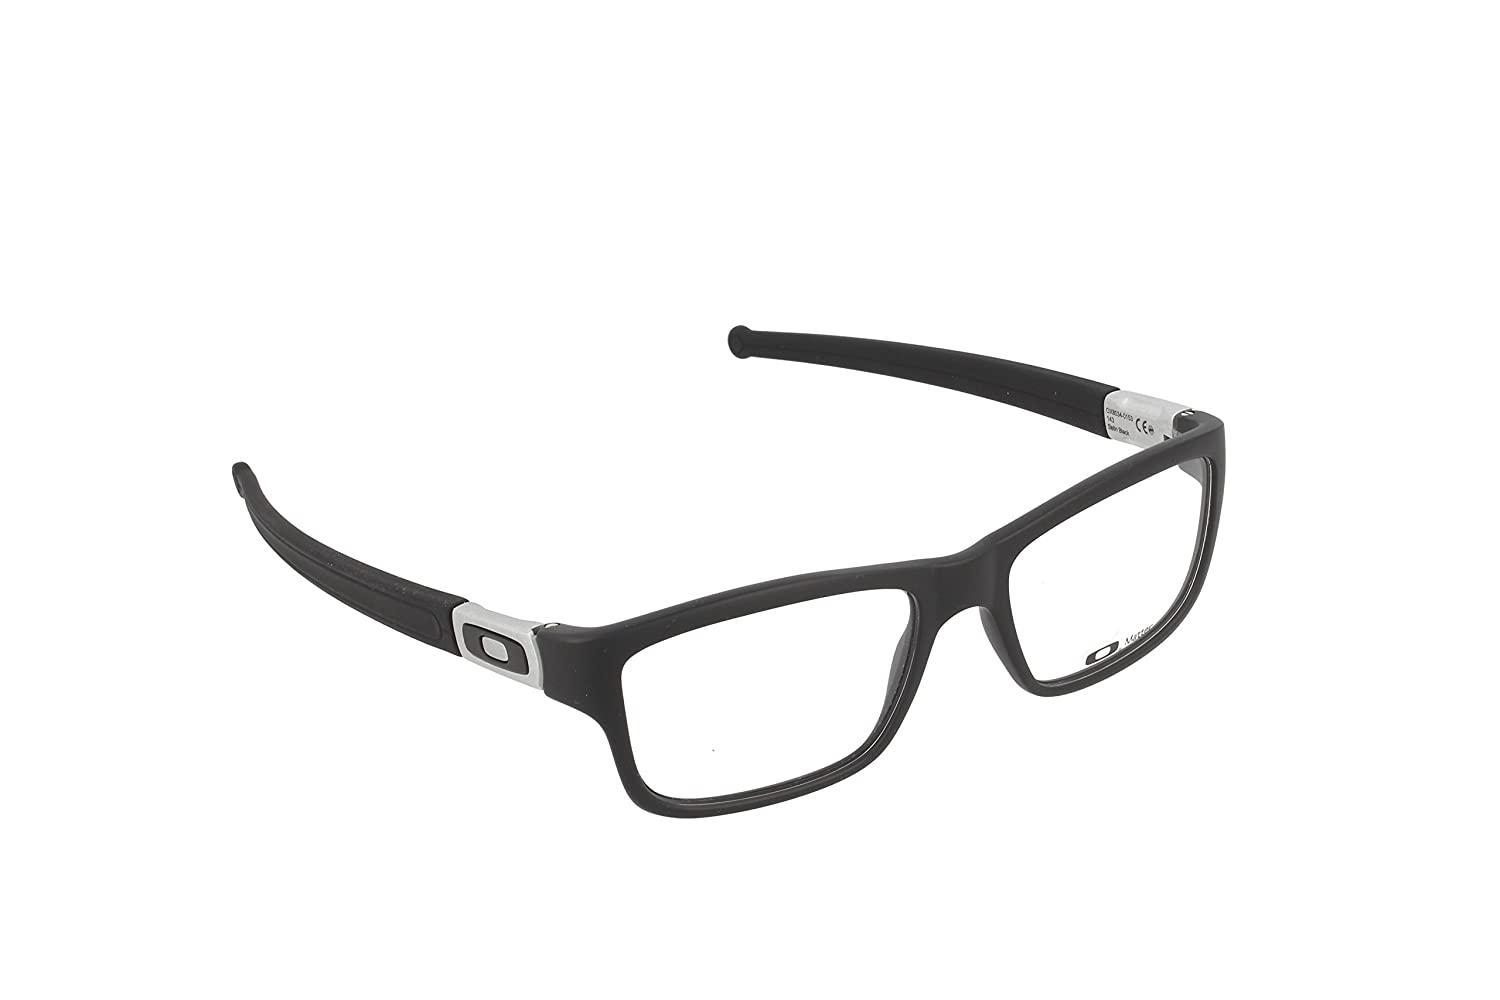 6762ba6b1f Amazon.com  Oakley Marshal OX8034-0153 Eyeglasses Satin Black Clear Demo 53  17  Shoes